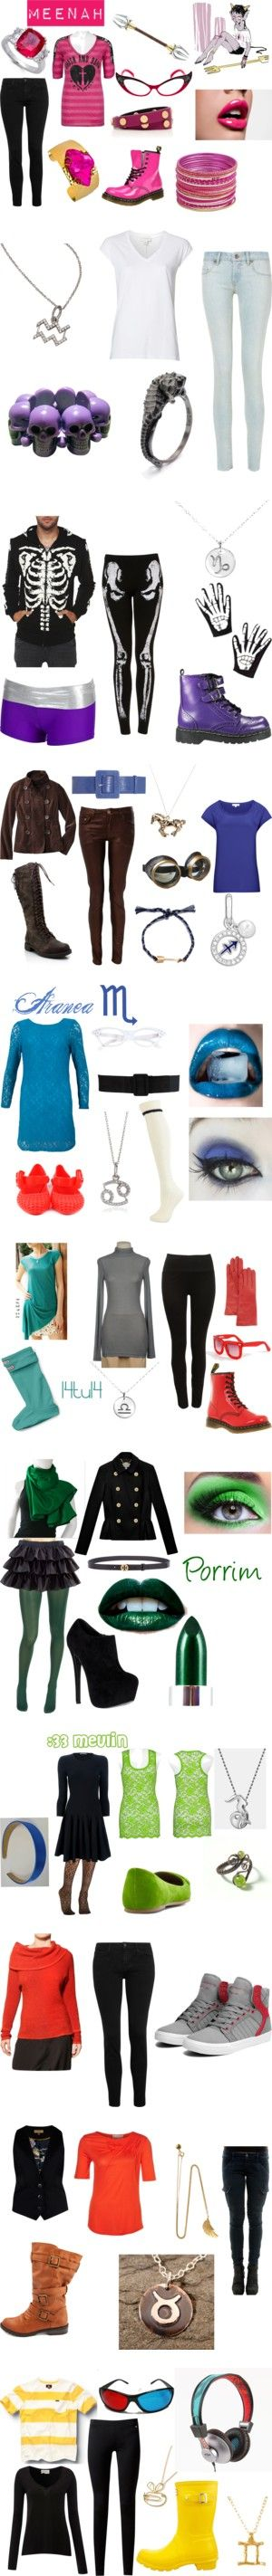 """""""Homestuck Pre-Scratch Ancestors"""" by sweetpichie ❤ liked on Polyvore"""